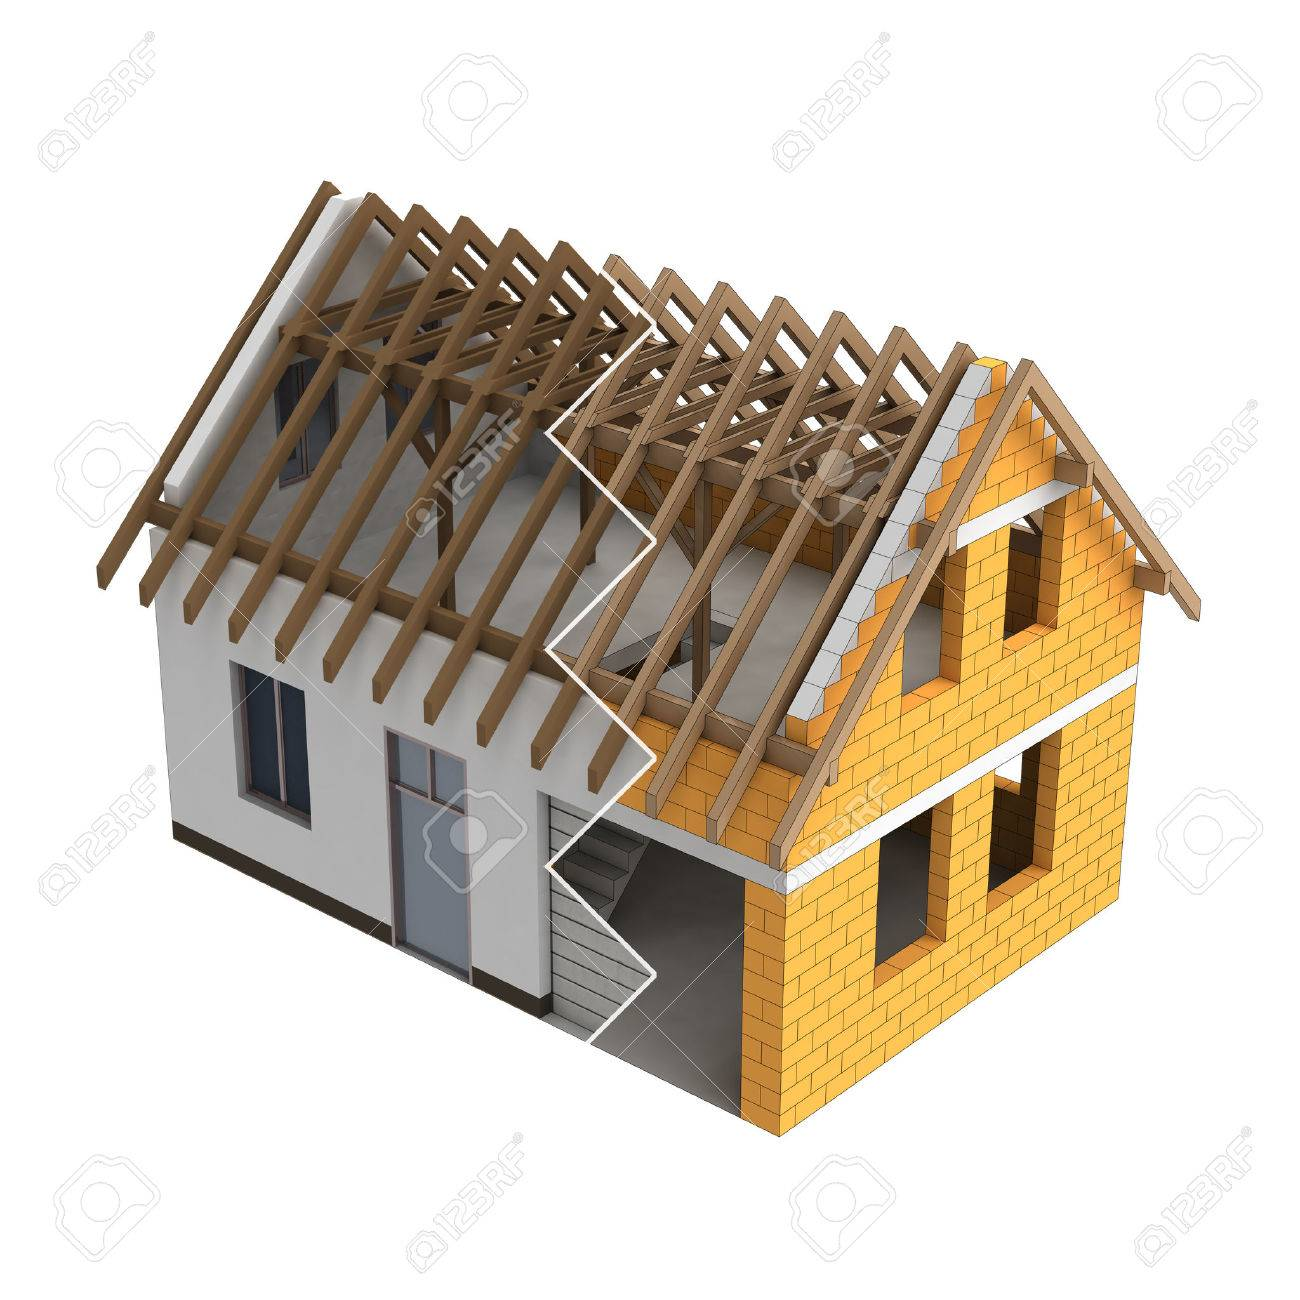 Wooden house wooden construction house design zigzag transition illustration stock photo